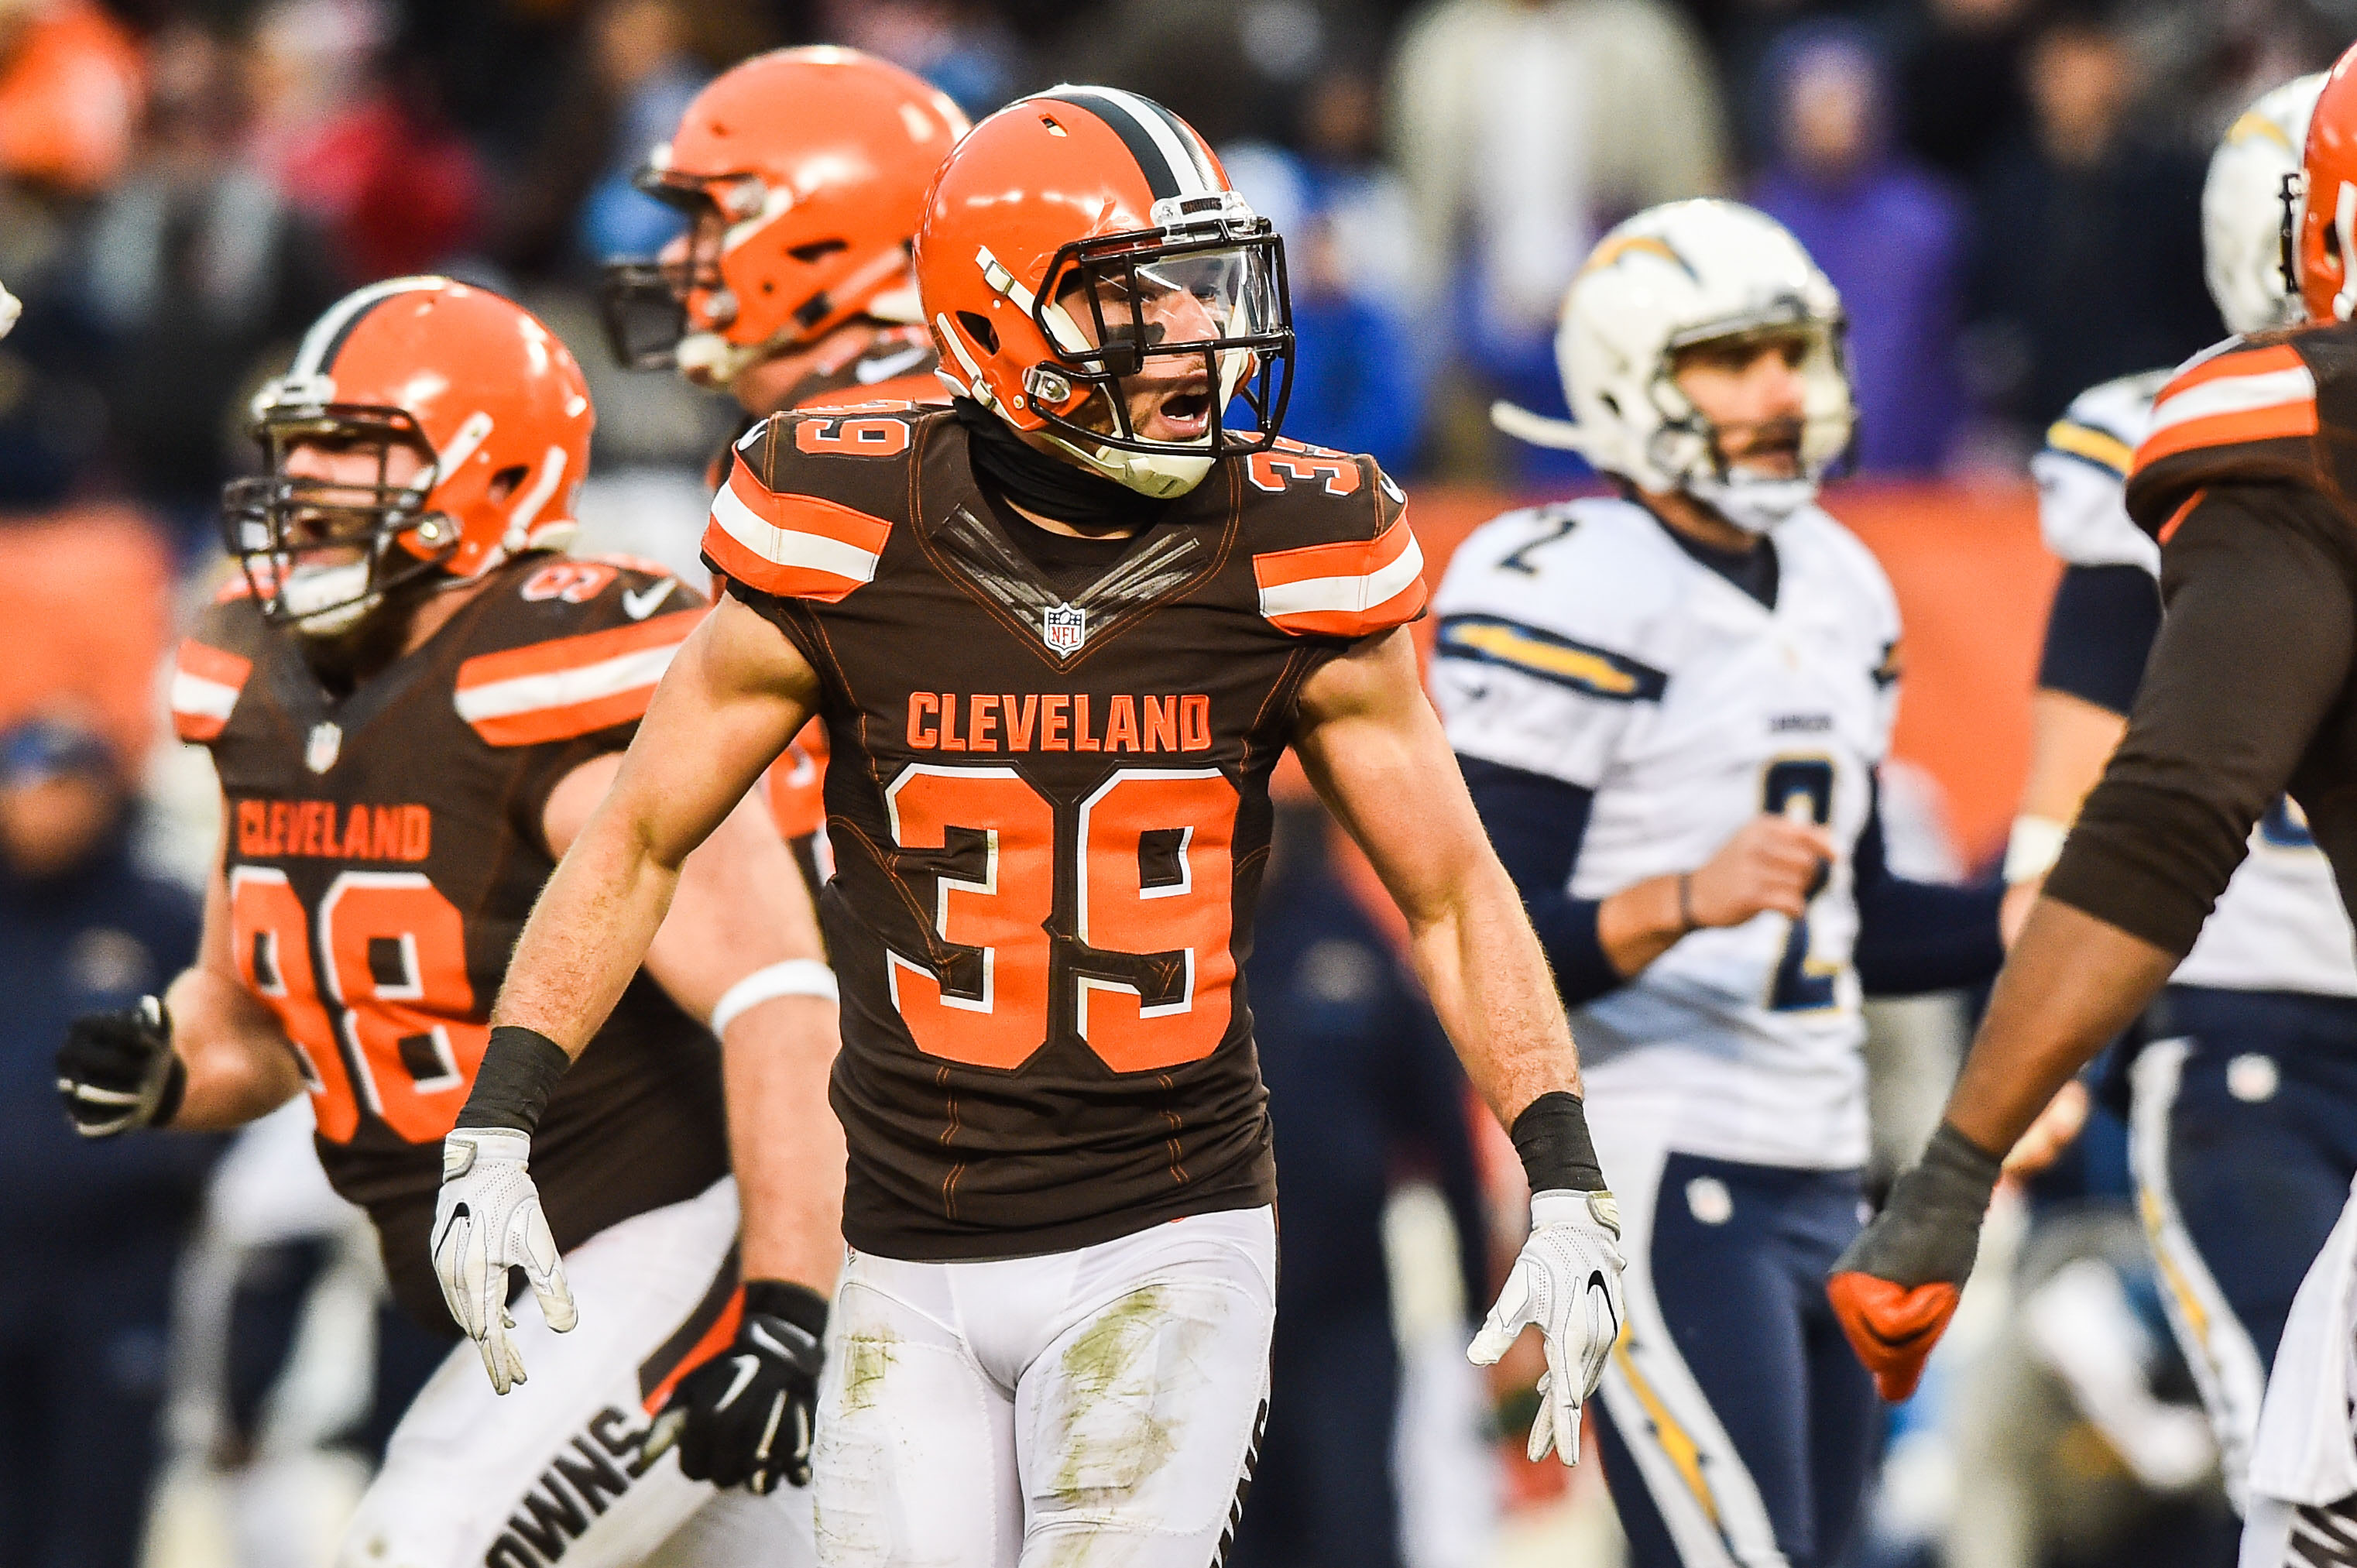 9776334-nfl-san-diego-chargers-at-cleveland-browns